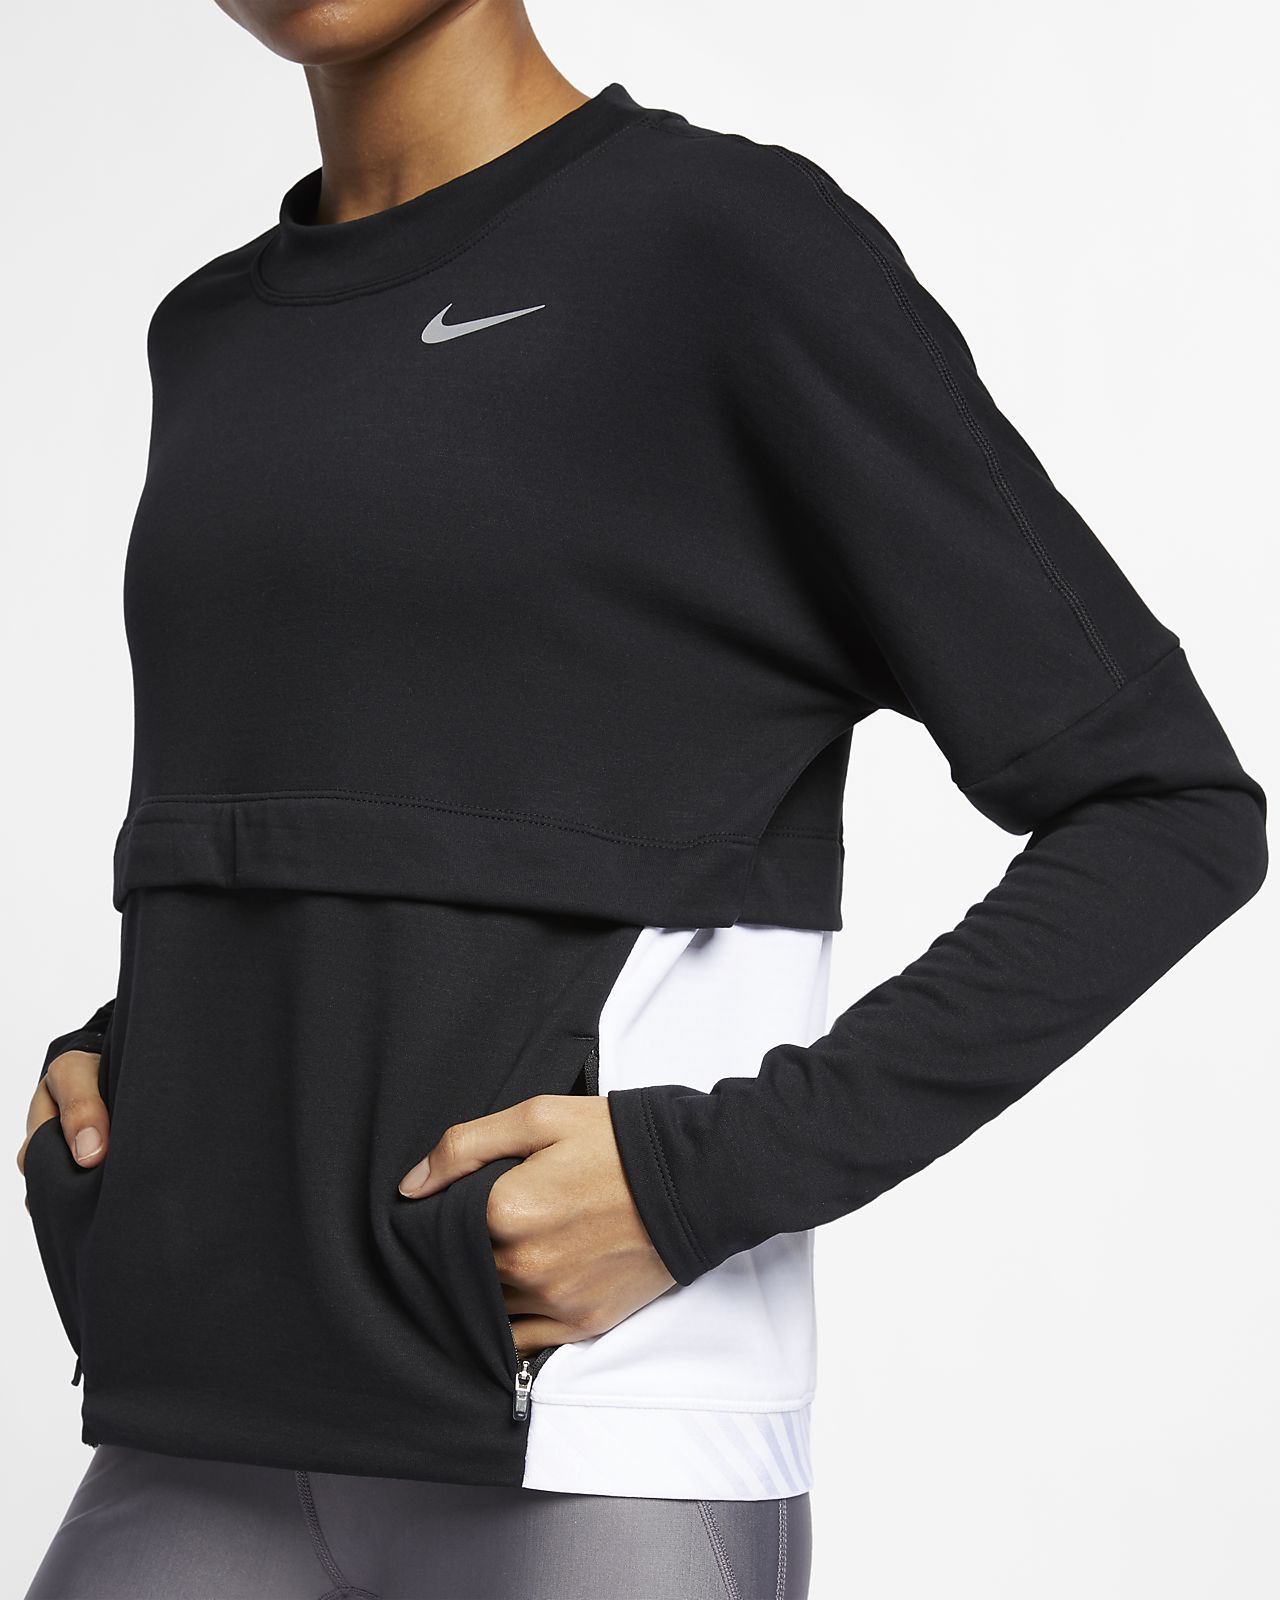 Haut de running Nike Therma Sphere pour Femme